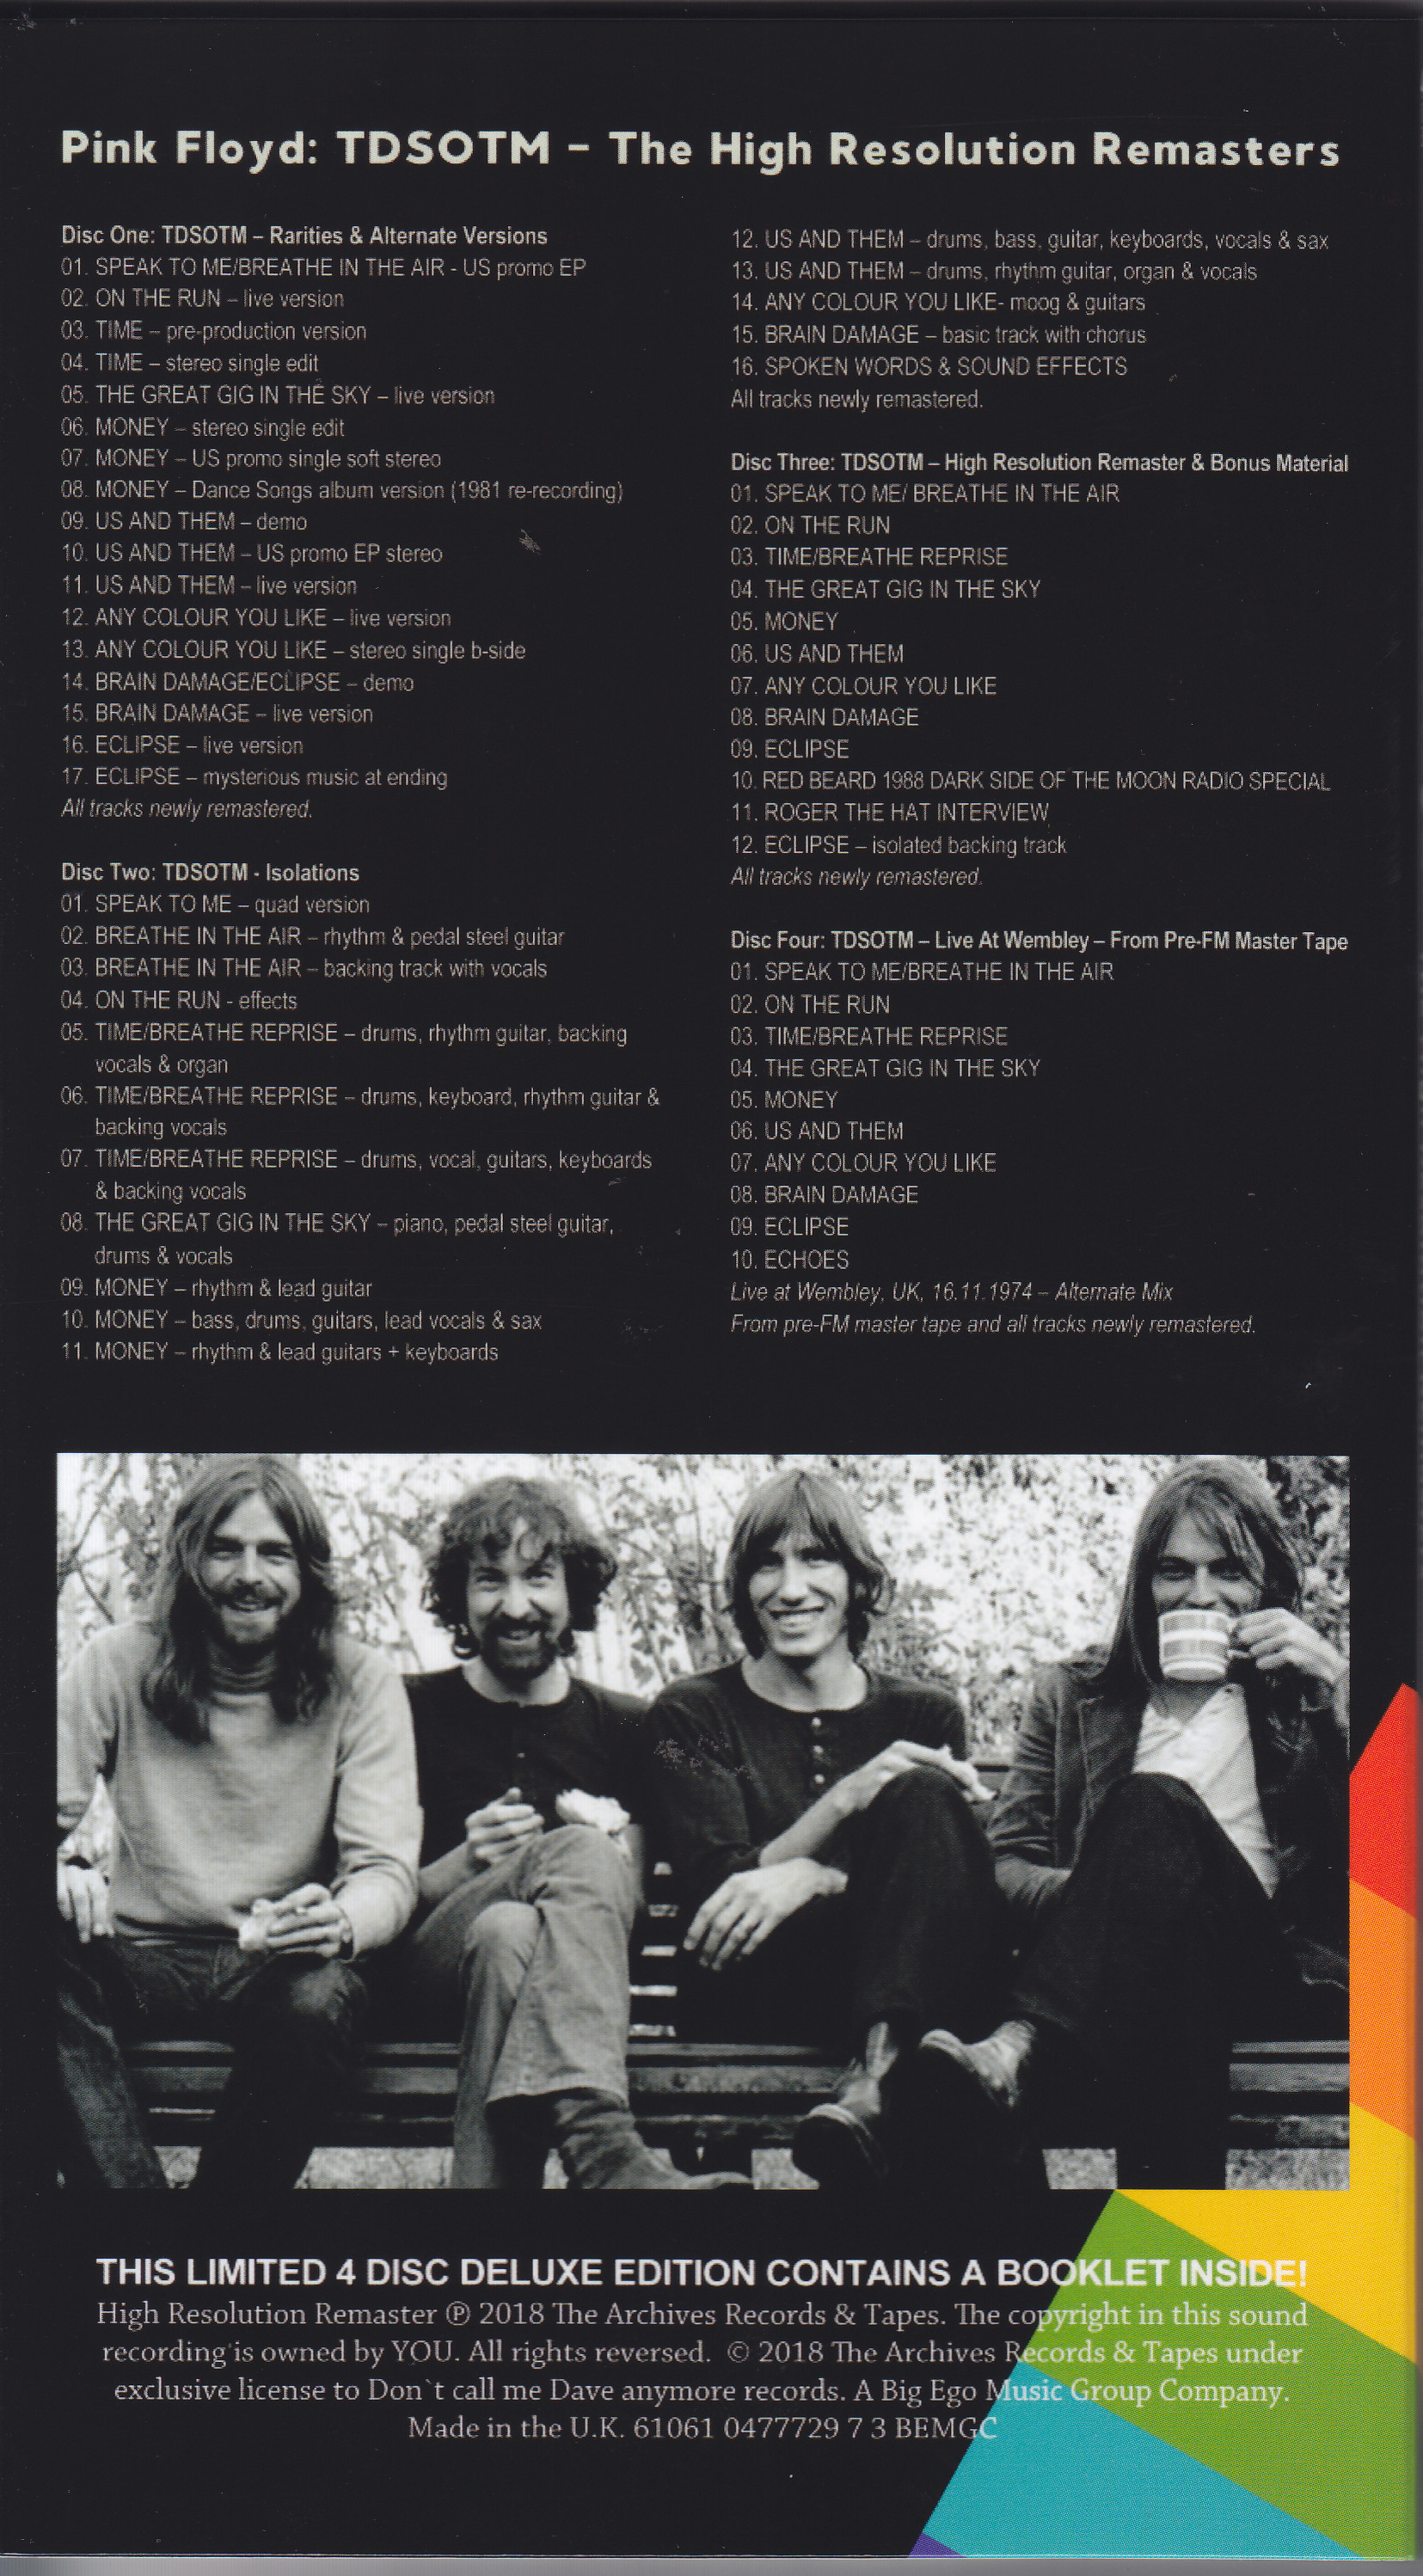 Pink floyd the dark side of the moon the high resolution - Pink floyd images high resolution ...